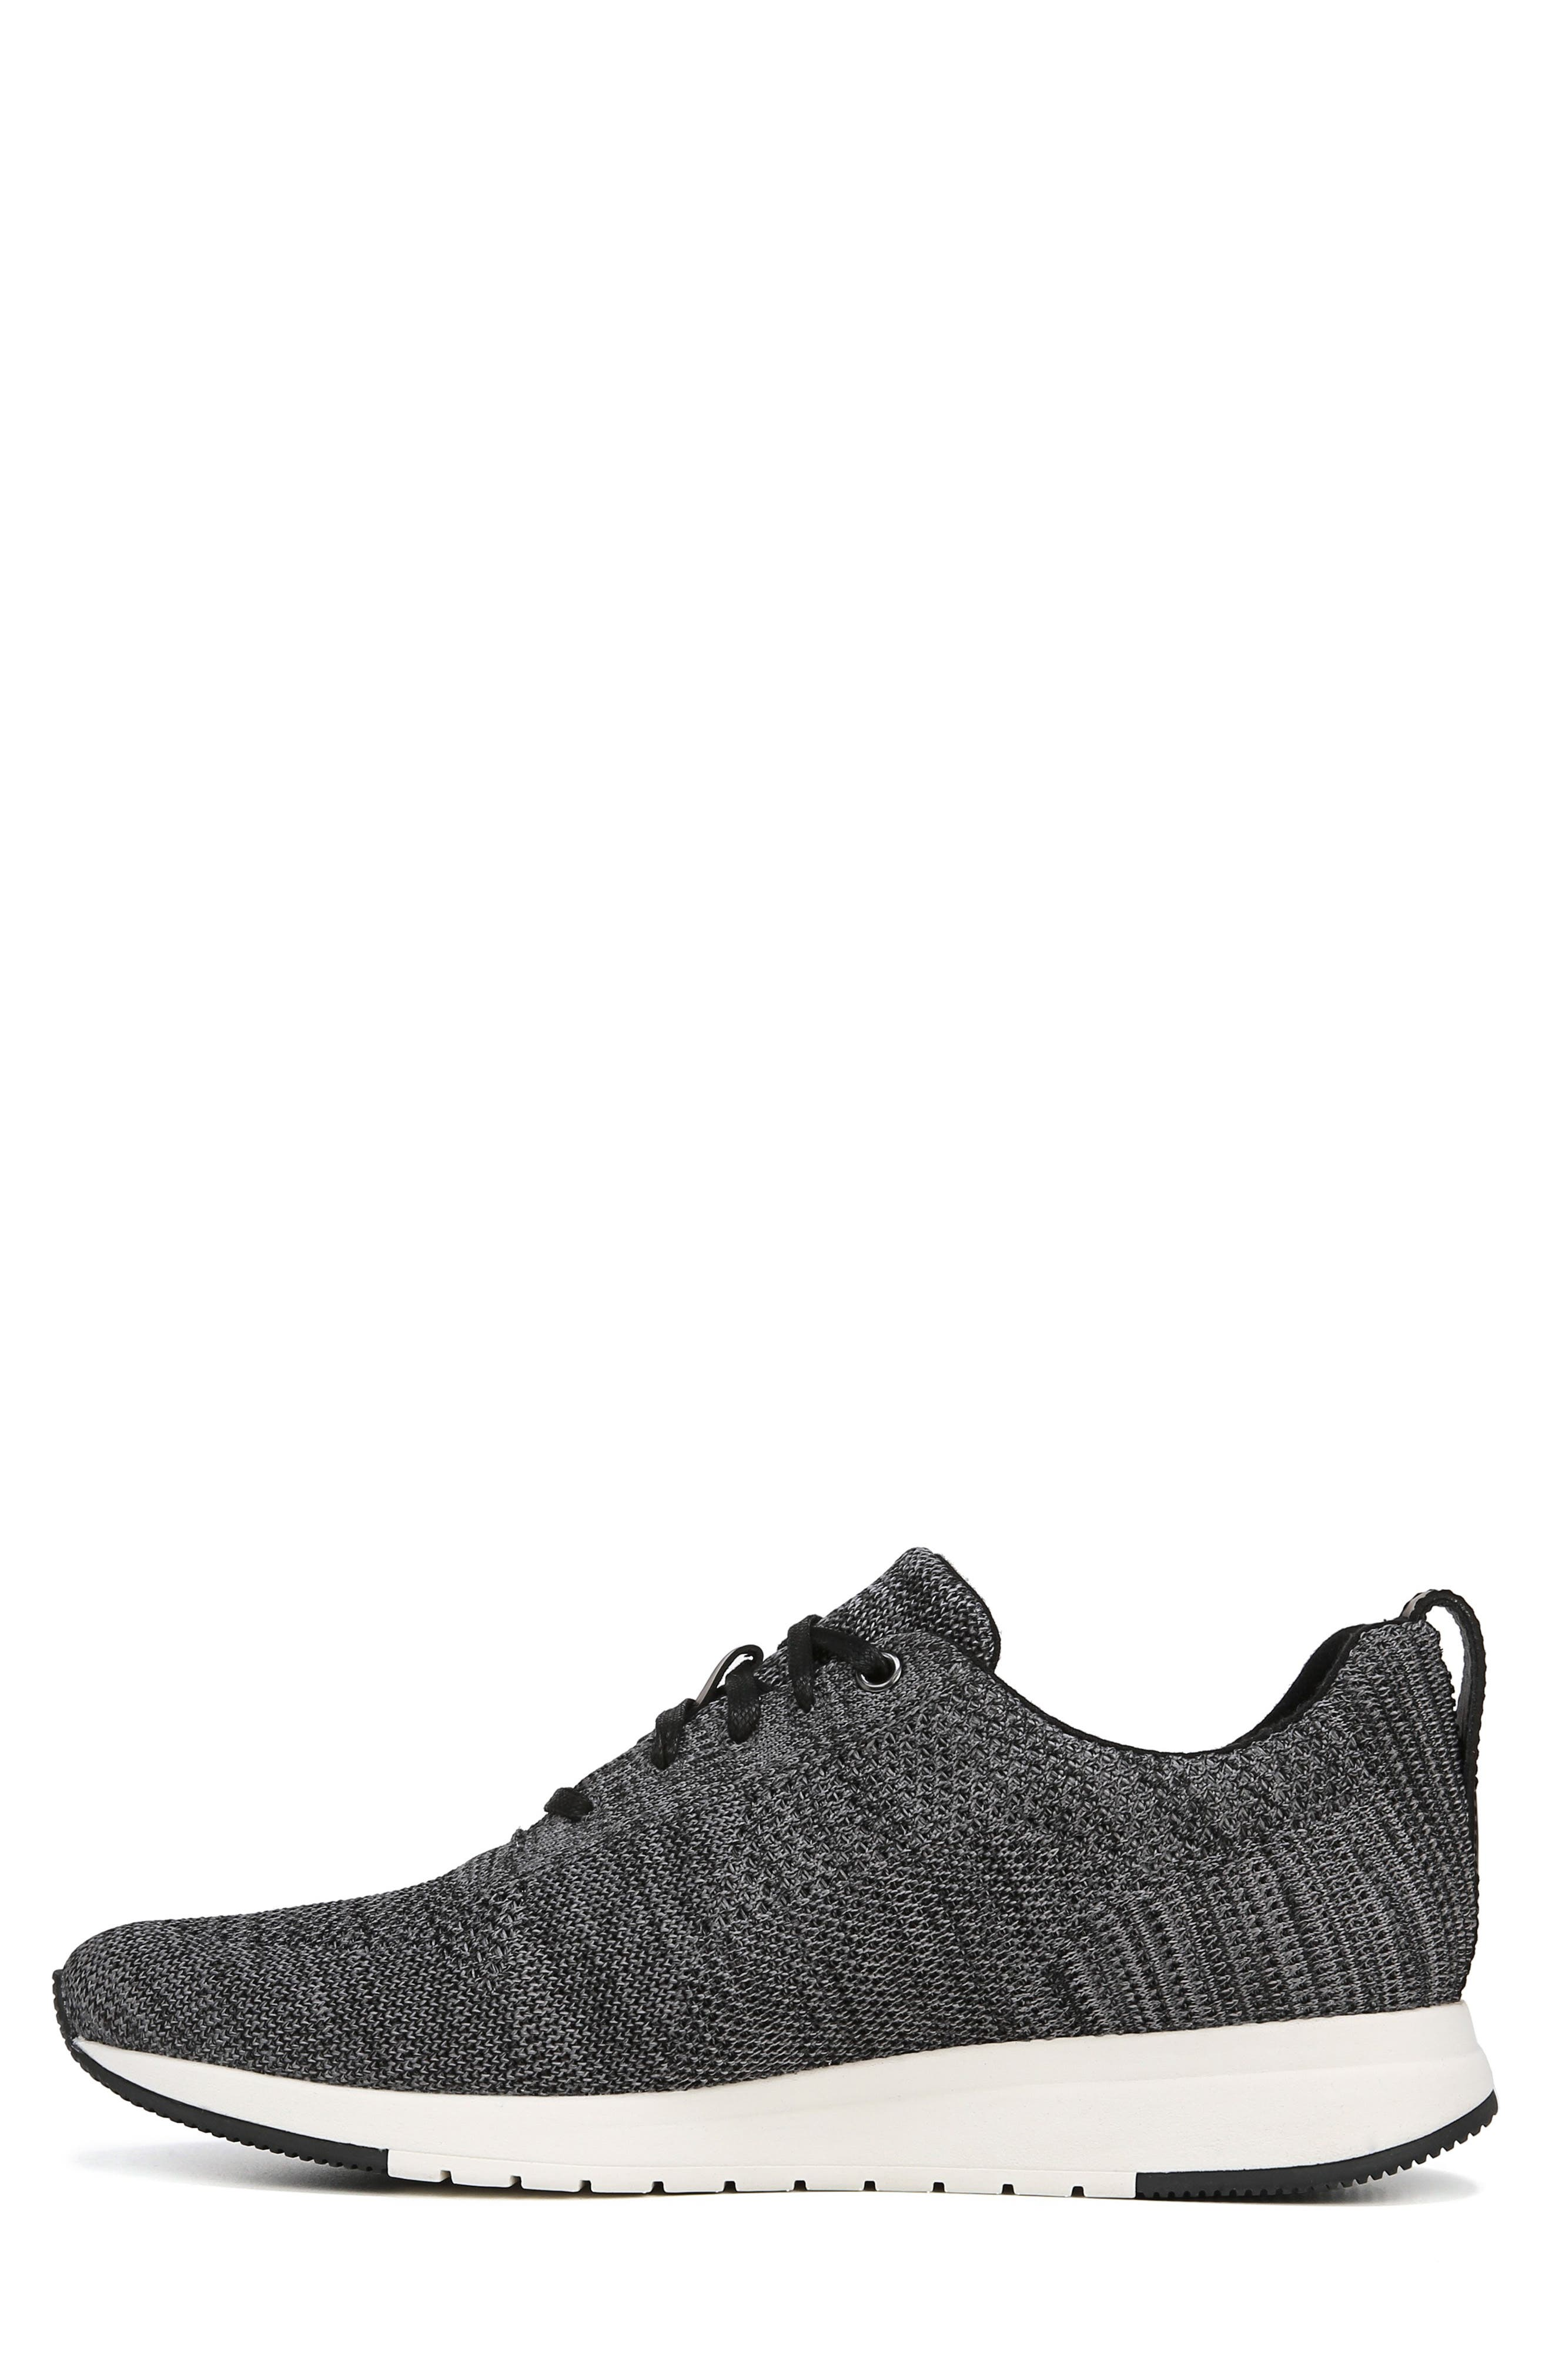 VINCE, Palo Knit Sneaker, Alternate thumbnail 8, color, MARL GREY/ BLACK